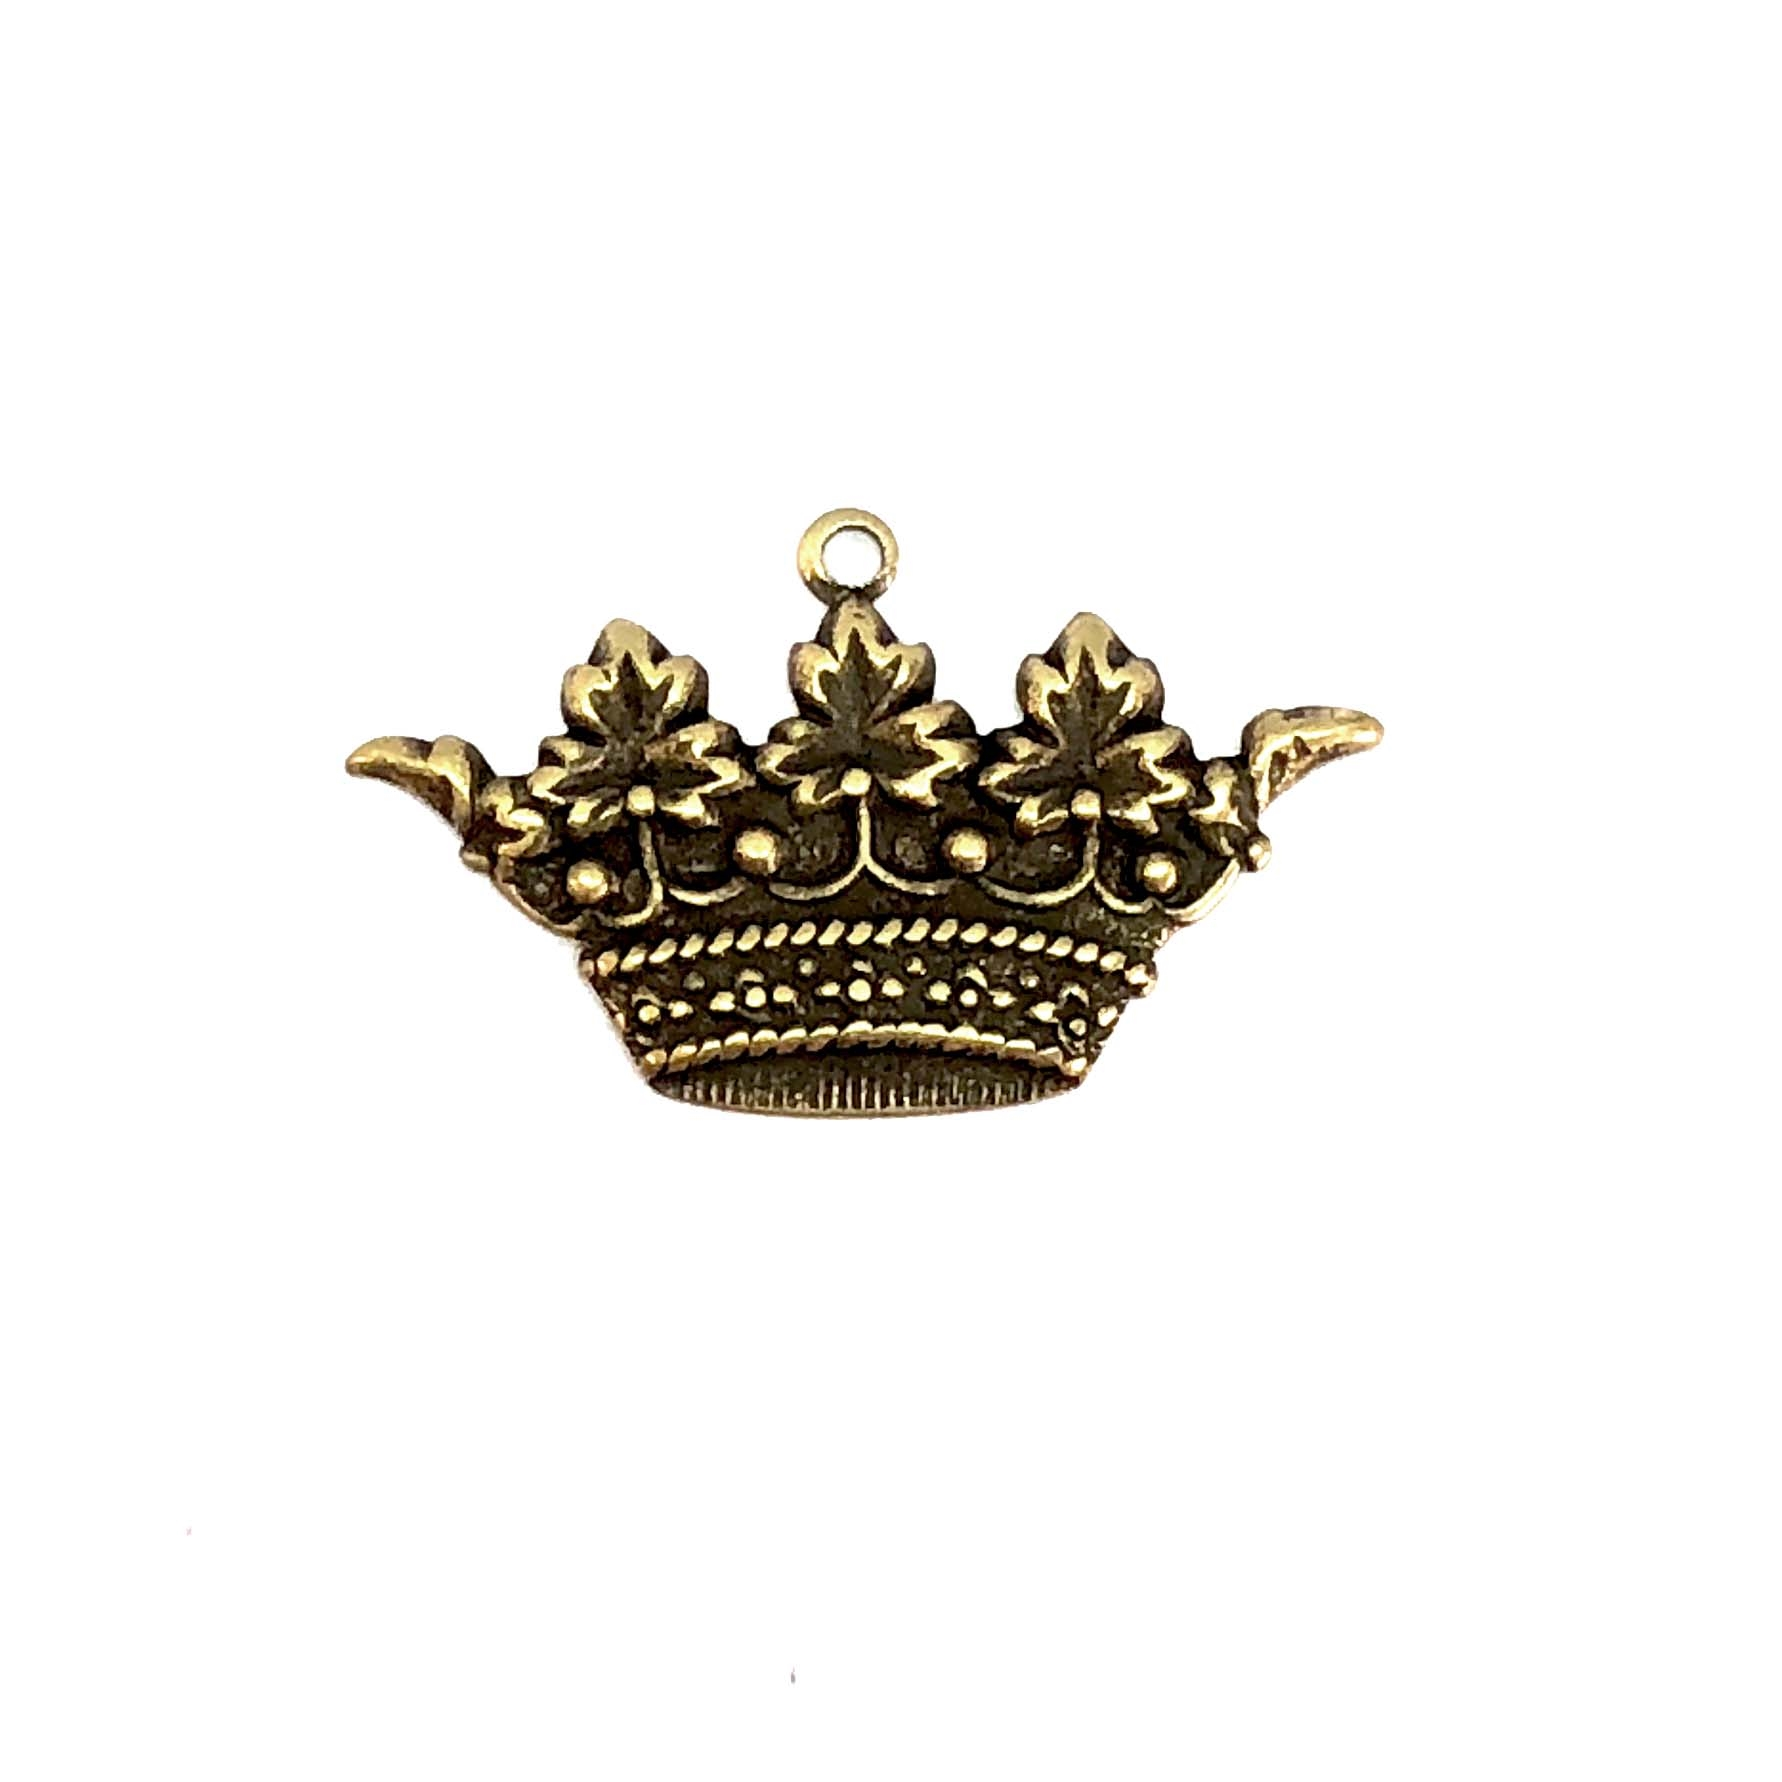 Brass Crown Charm, Brass Ox, 05310, charm bracelets, jewelry making supplies, vintage jewelry supplies, crown charms, antique brass, bracelet making supplies, US made, Bsue Boutiques, nickel free